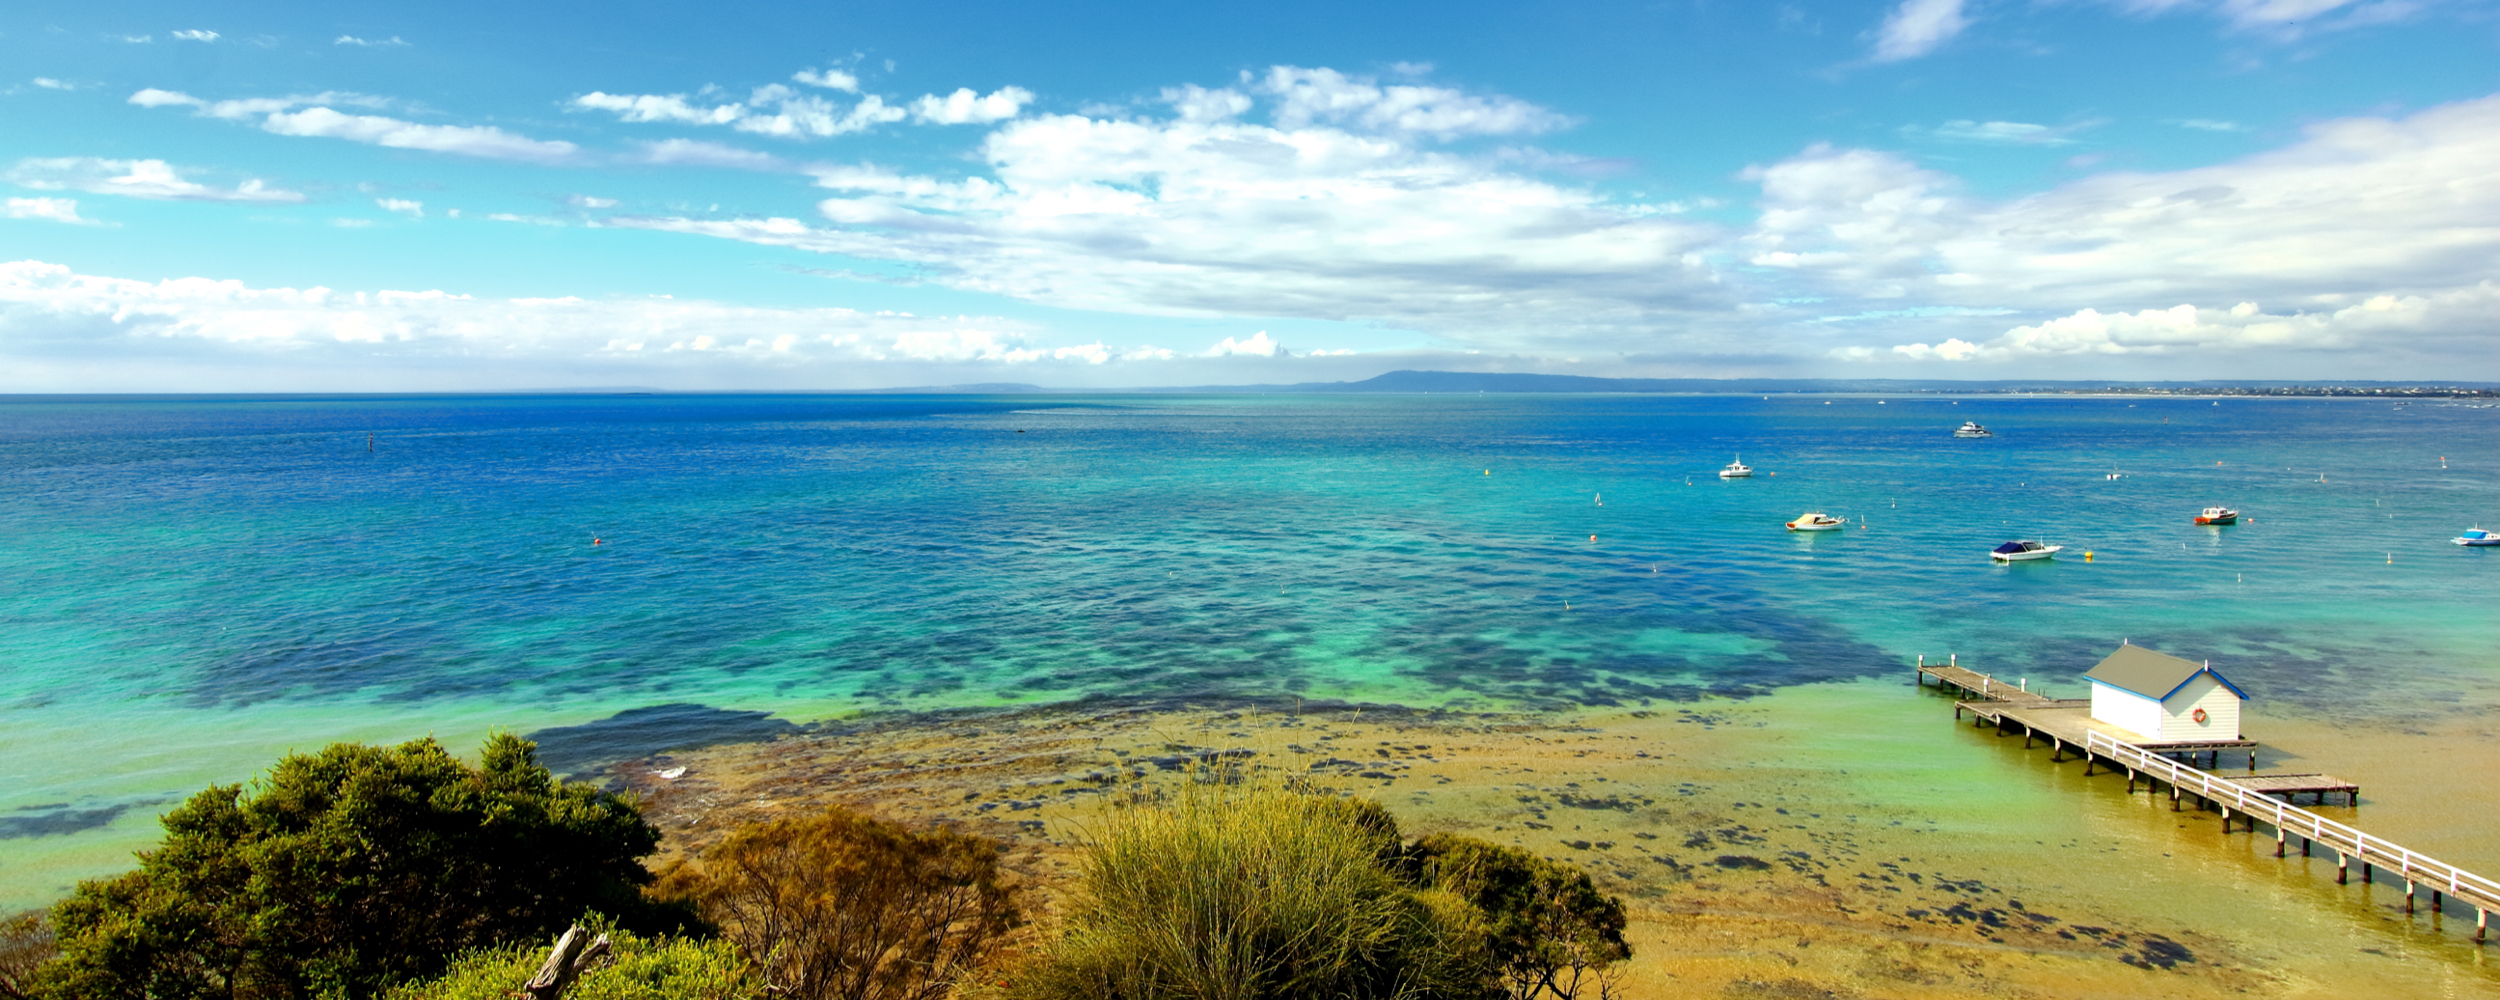 Surprise the kids with an exciting trip to the scenic seaside town of Sorrento, VIC